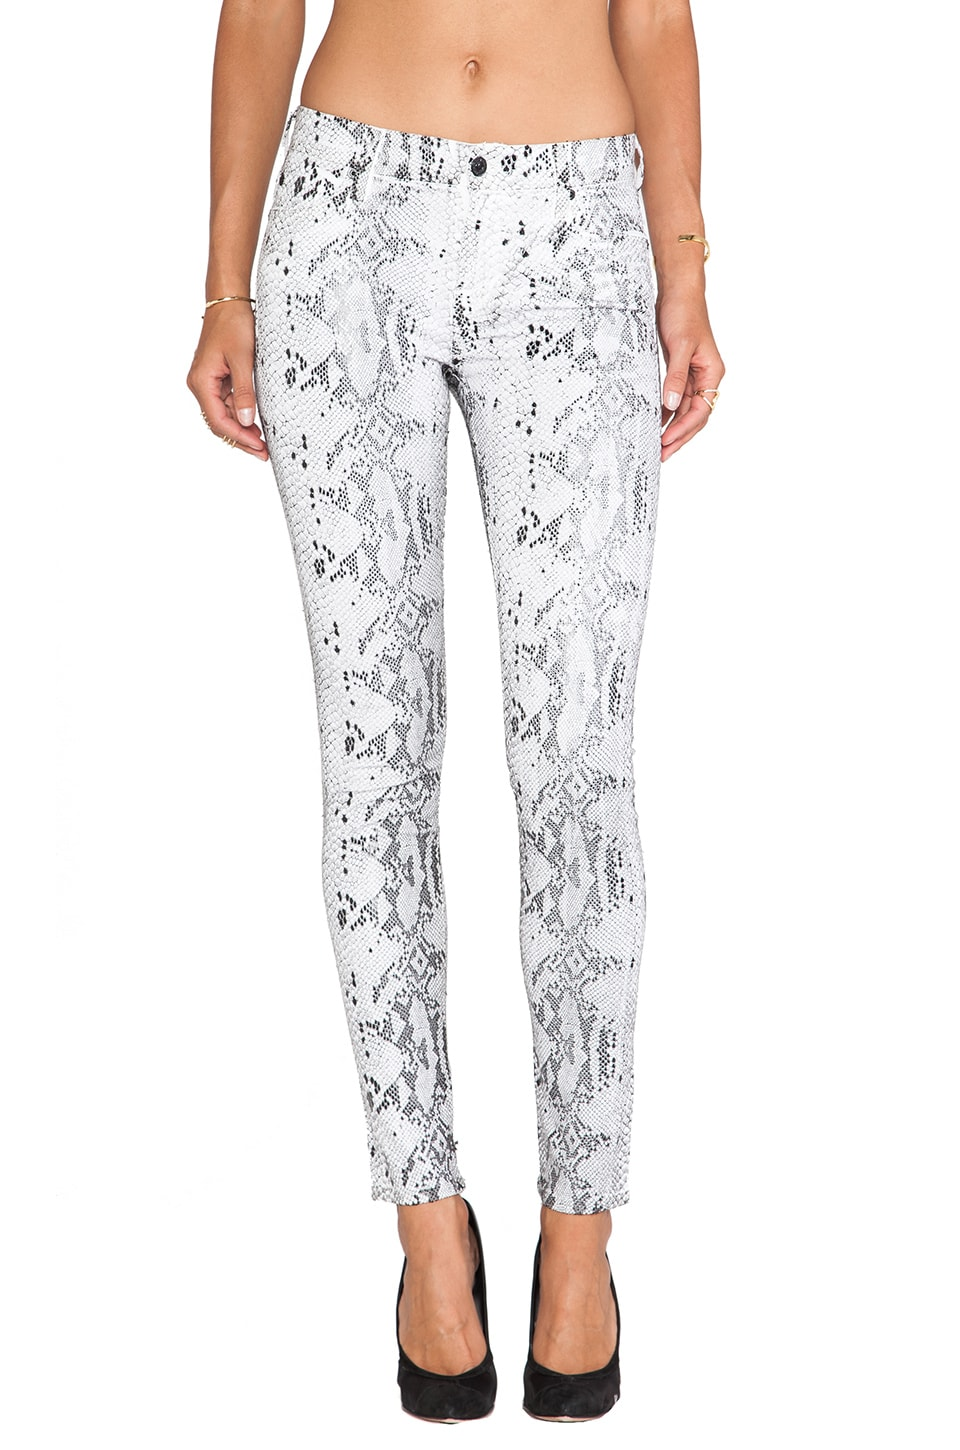 7 For All Mankind The Skinny in White with Black Cobra